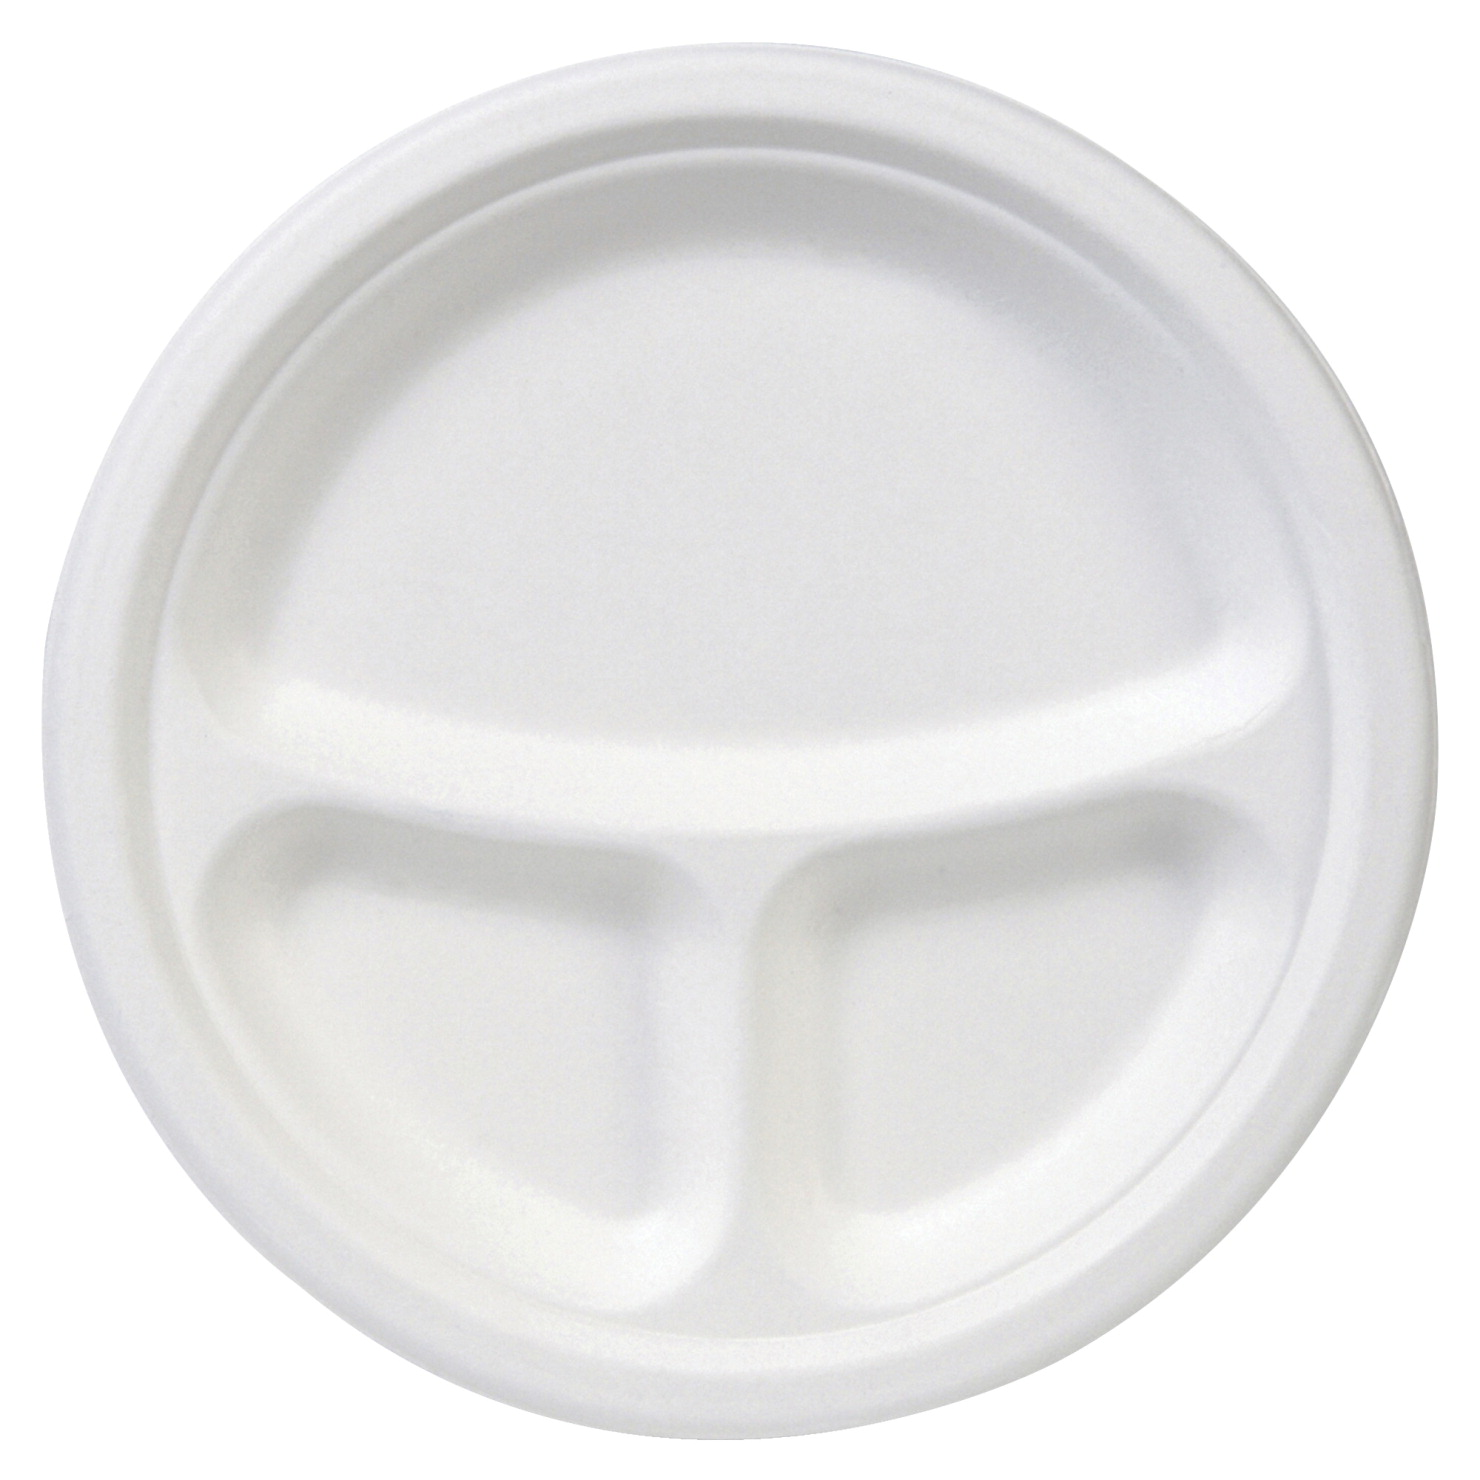 Dixie Foods EcoSmart 3-Compartment Plates, 10 in, White, Pack of 10 ...